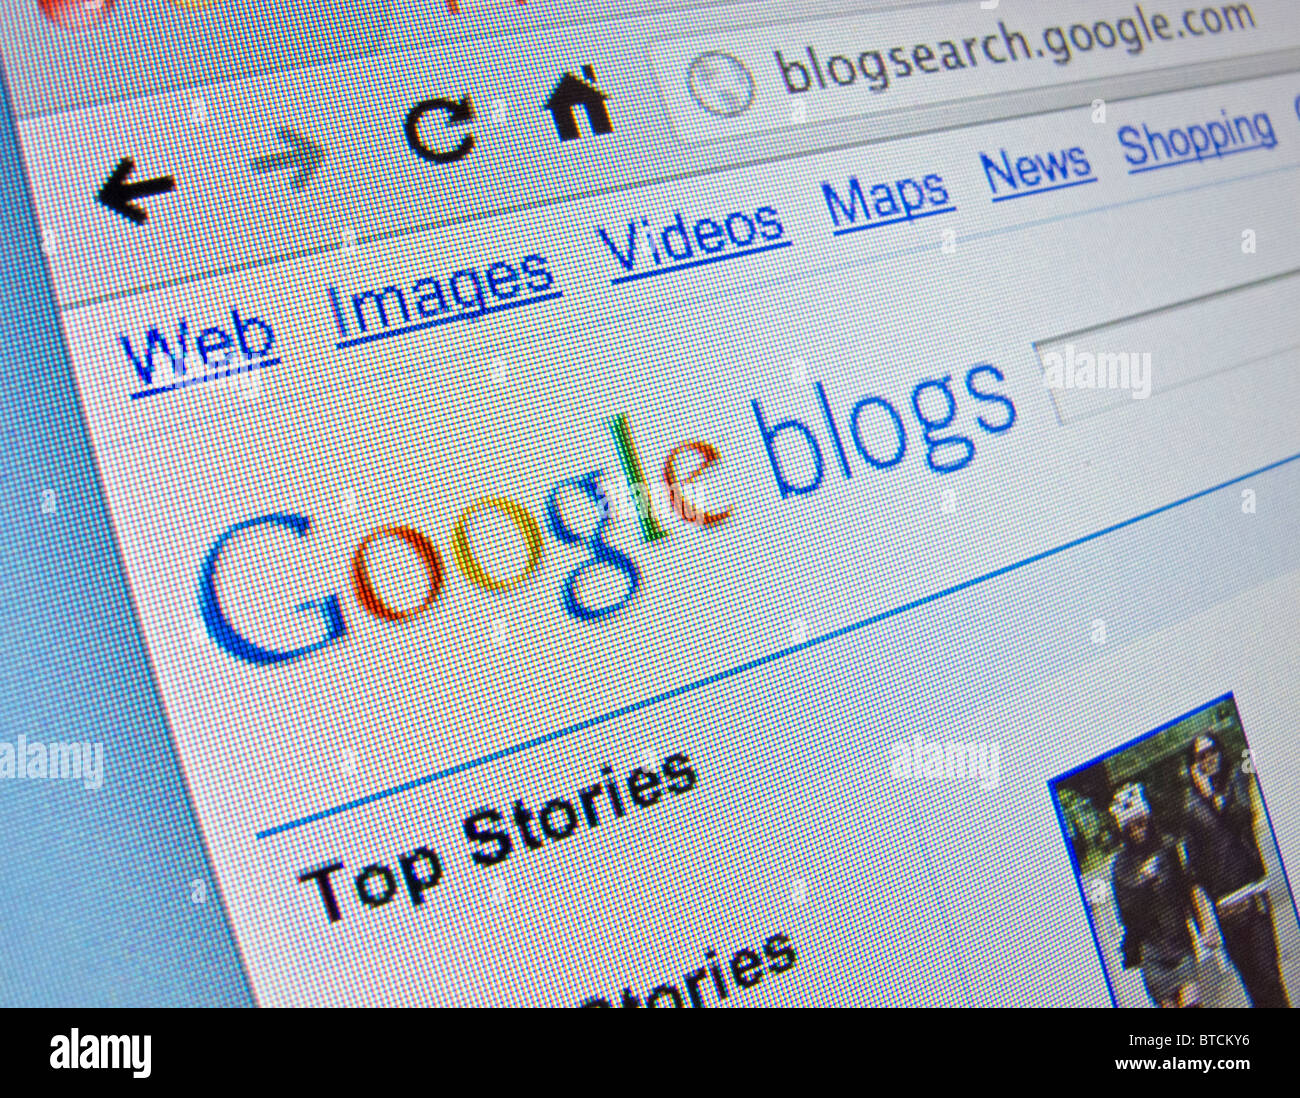 Screenshot from homepage of Google blogs website - Stock Image